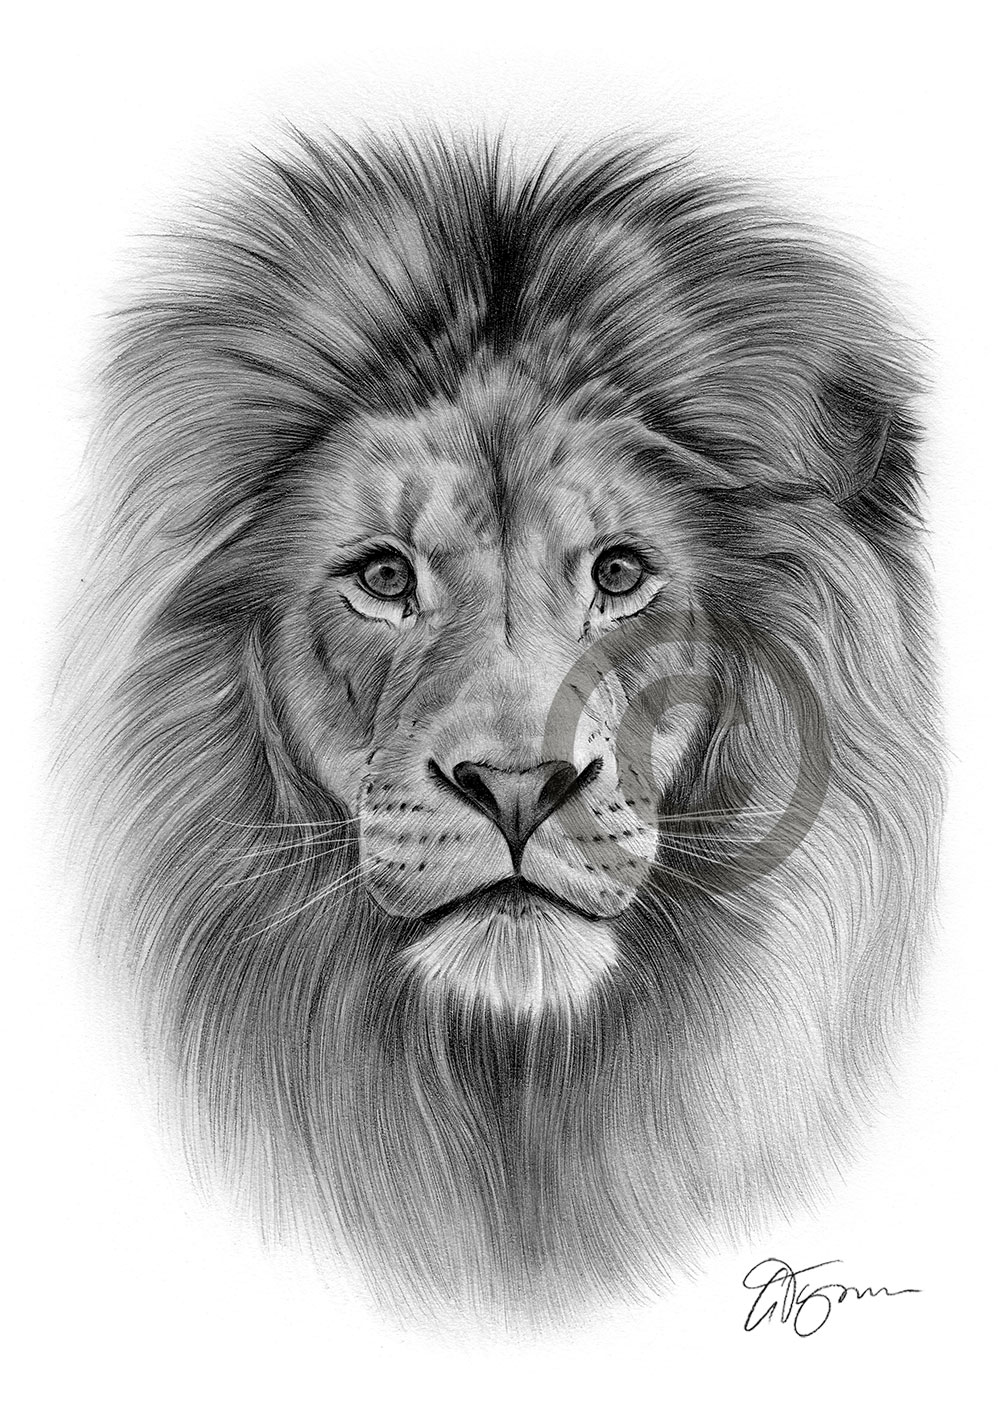 AFRICAN LION artwork pencil drawing print A3 / A4 sizes ...